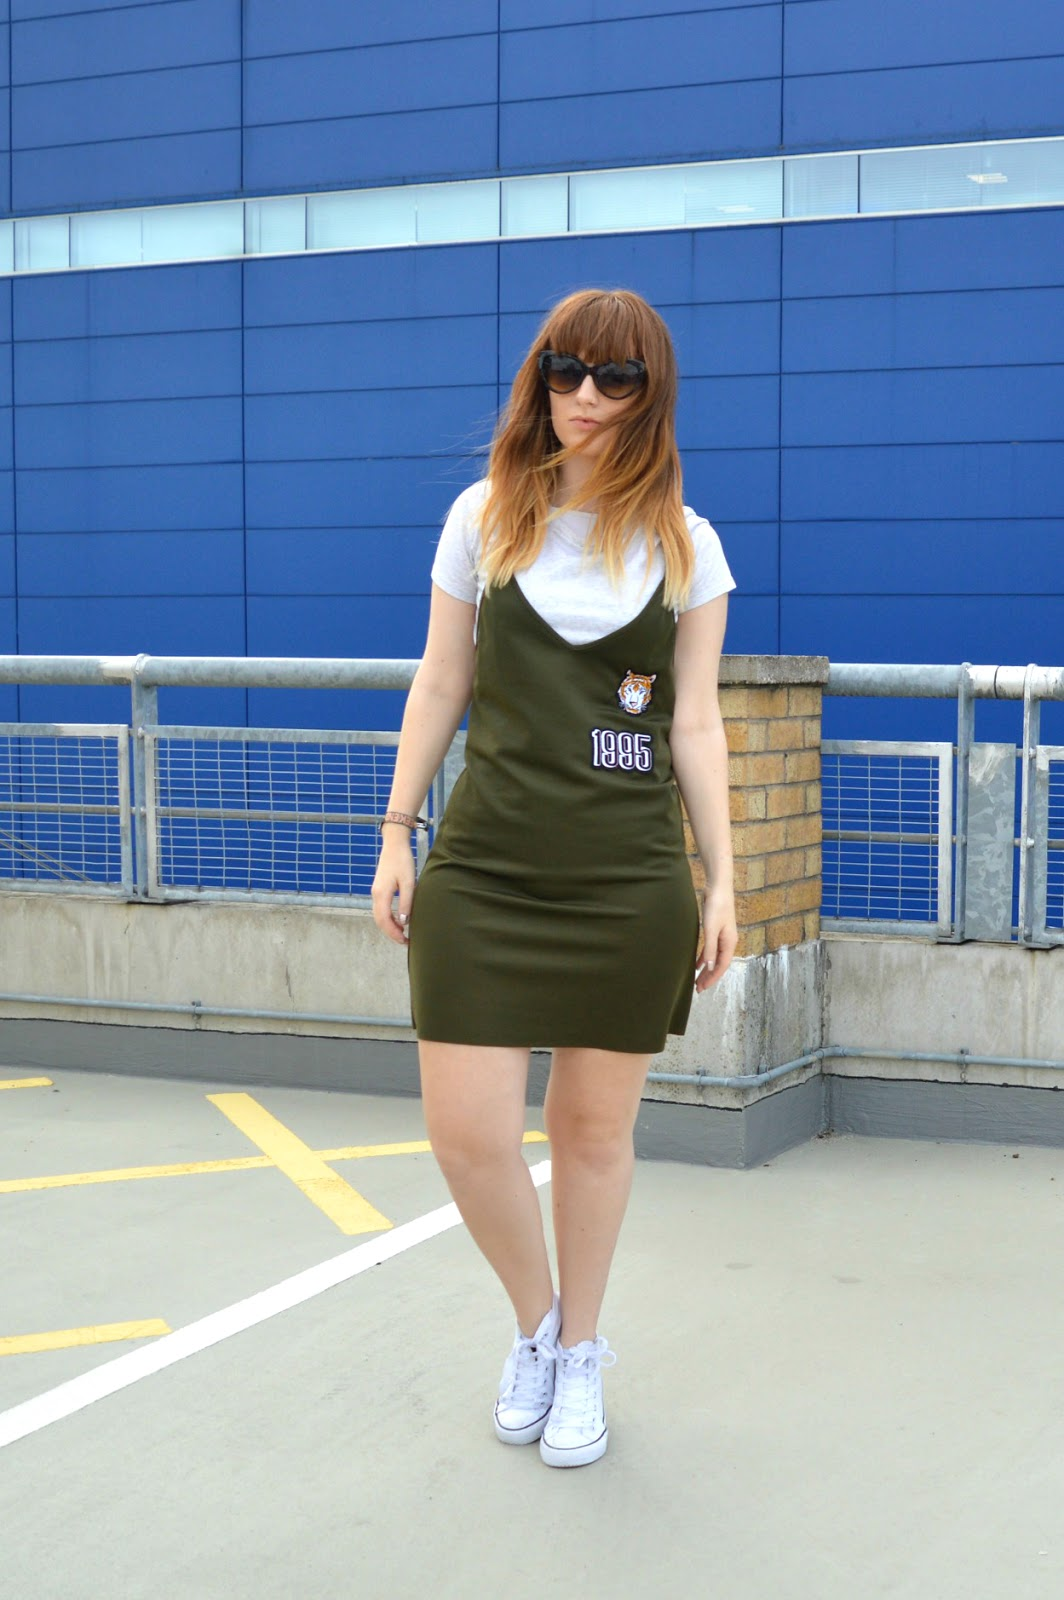 zara dress, khaki dress, personal style blogger, fashion blogger